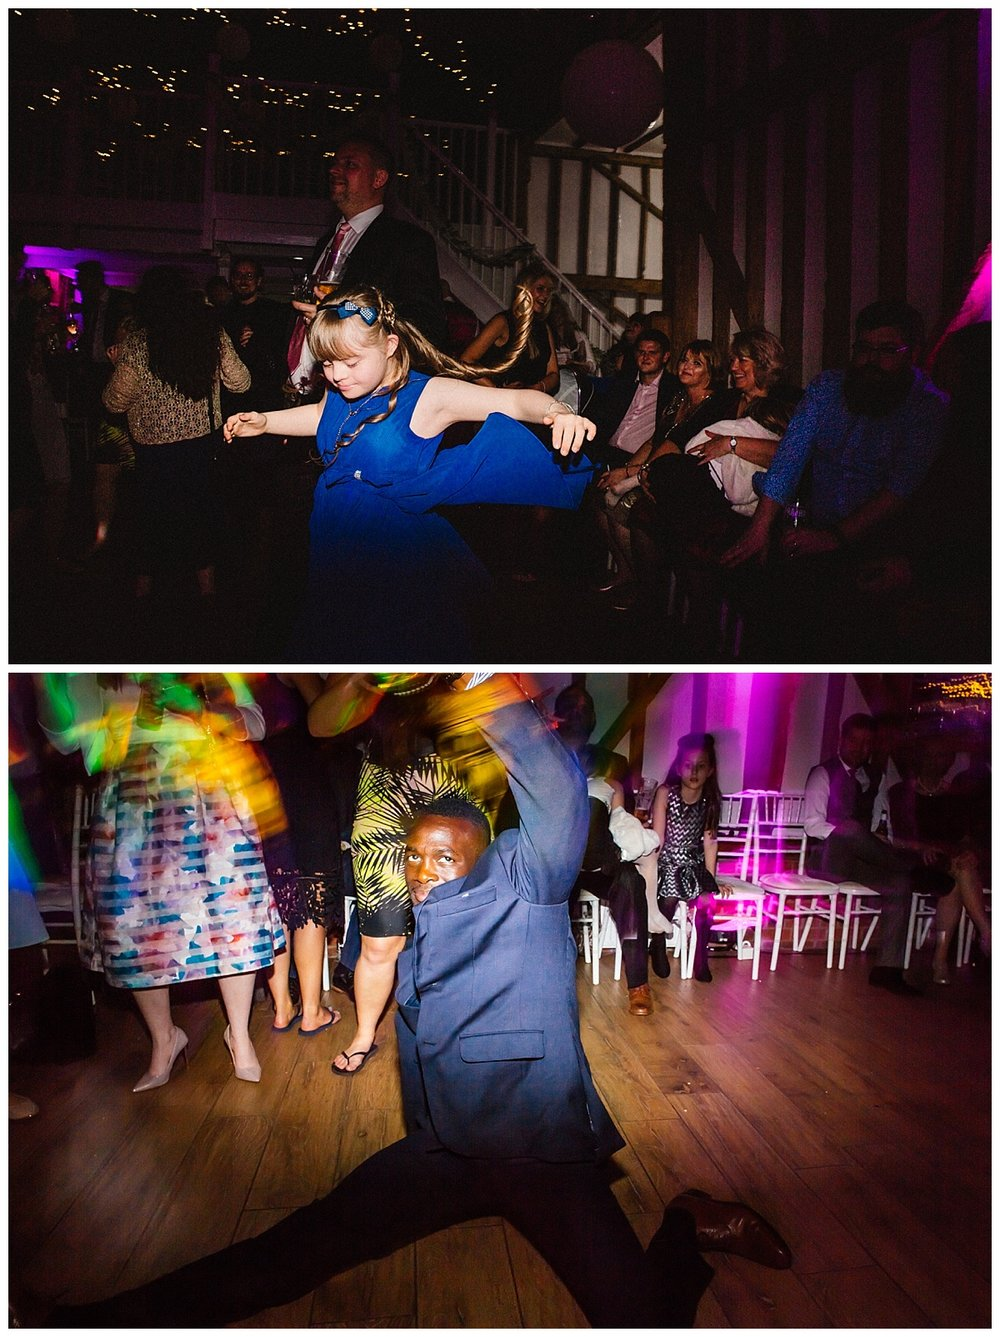 documentary wedding photography of guests dancing at a barn wedding